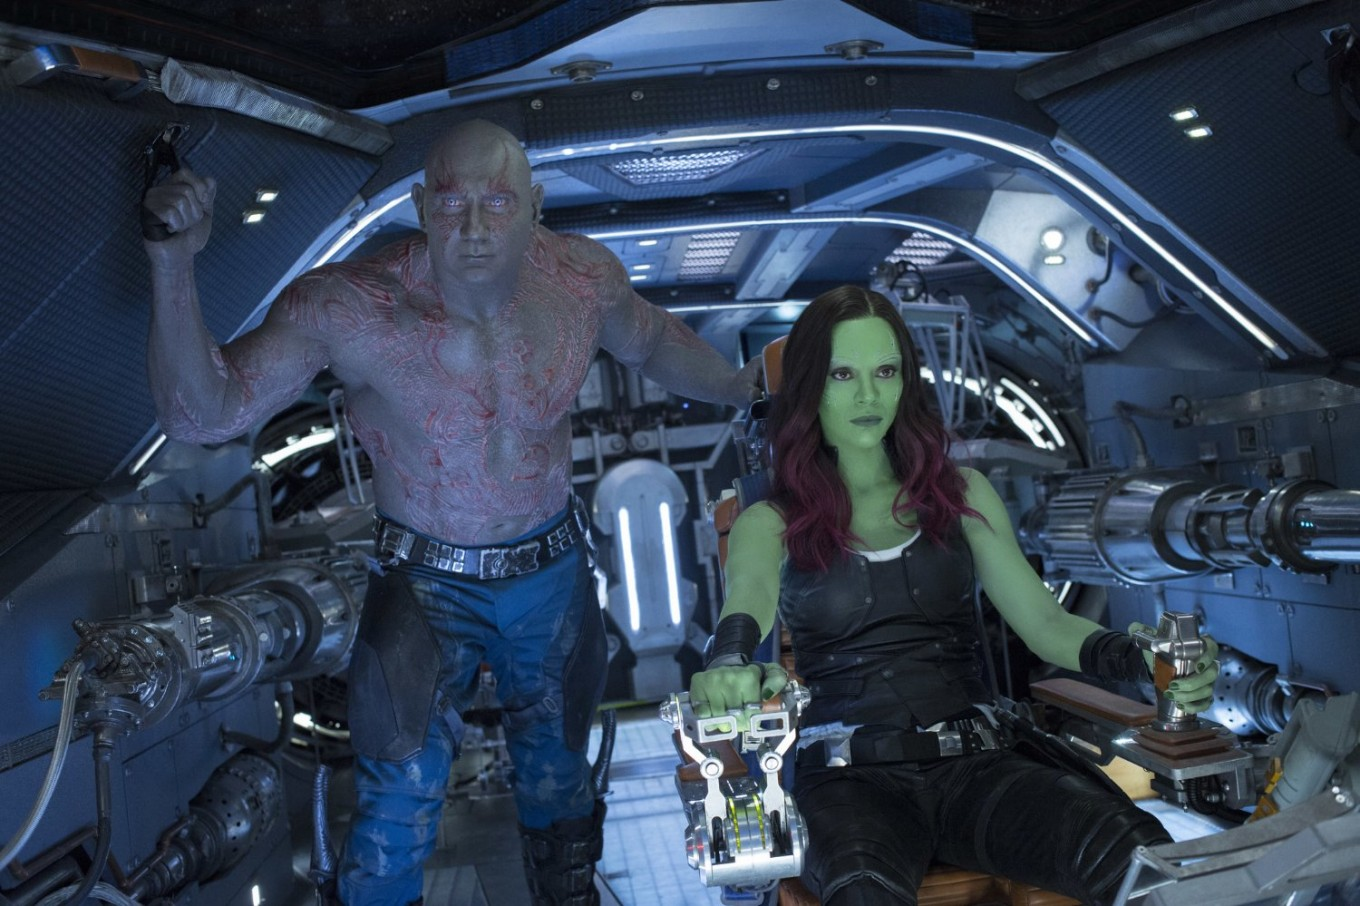 'Guardians' dominates again, leaving 2 new films in its wake